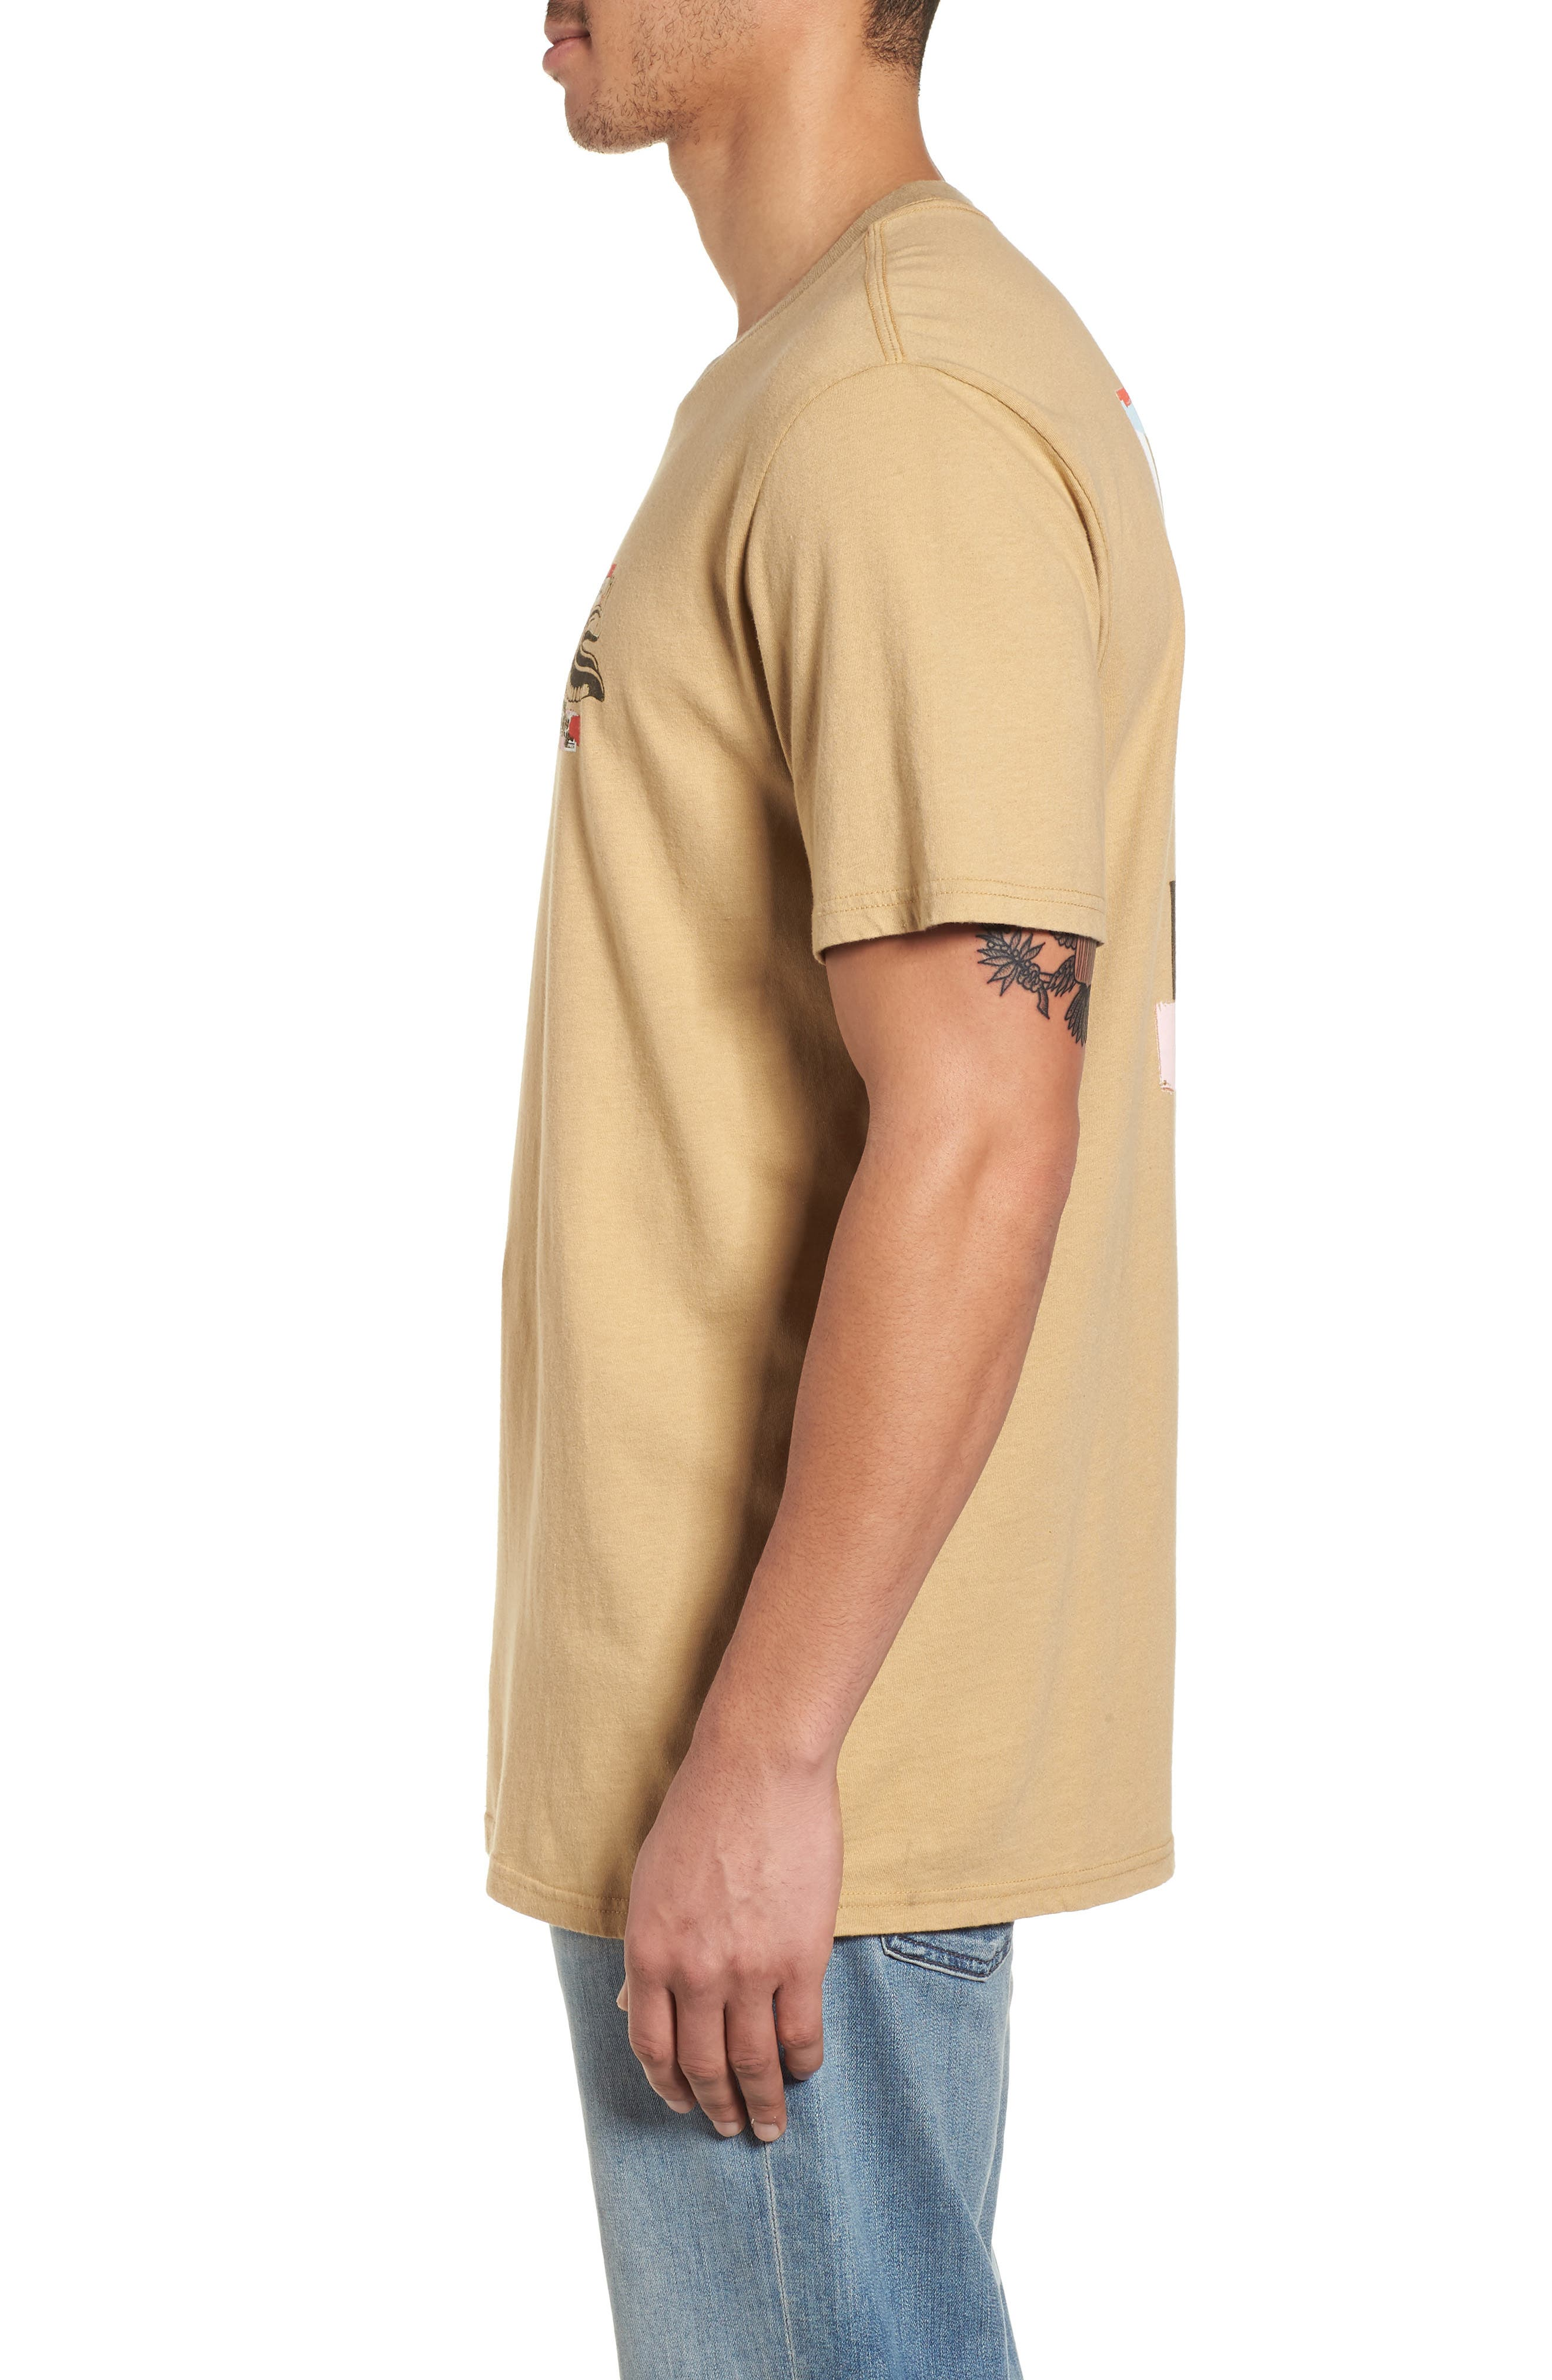 x Warhol Eighty Graphic T-Shirt,                             Alternate thumbnail 3, color,                             Straw